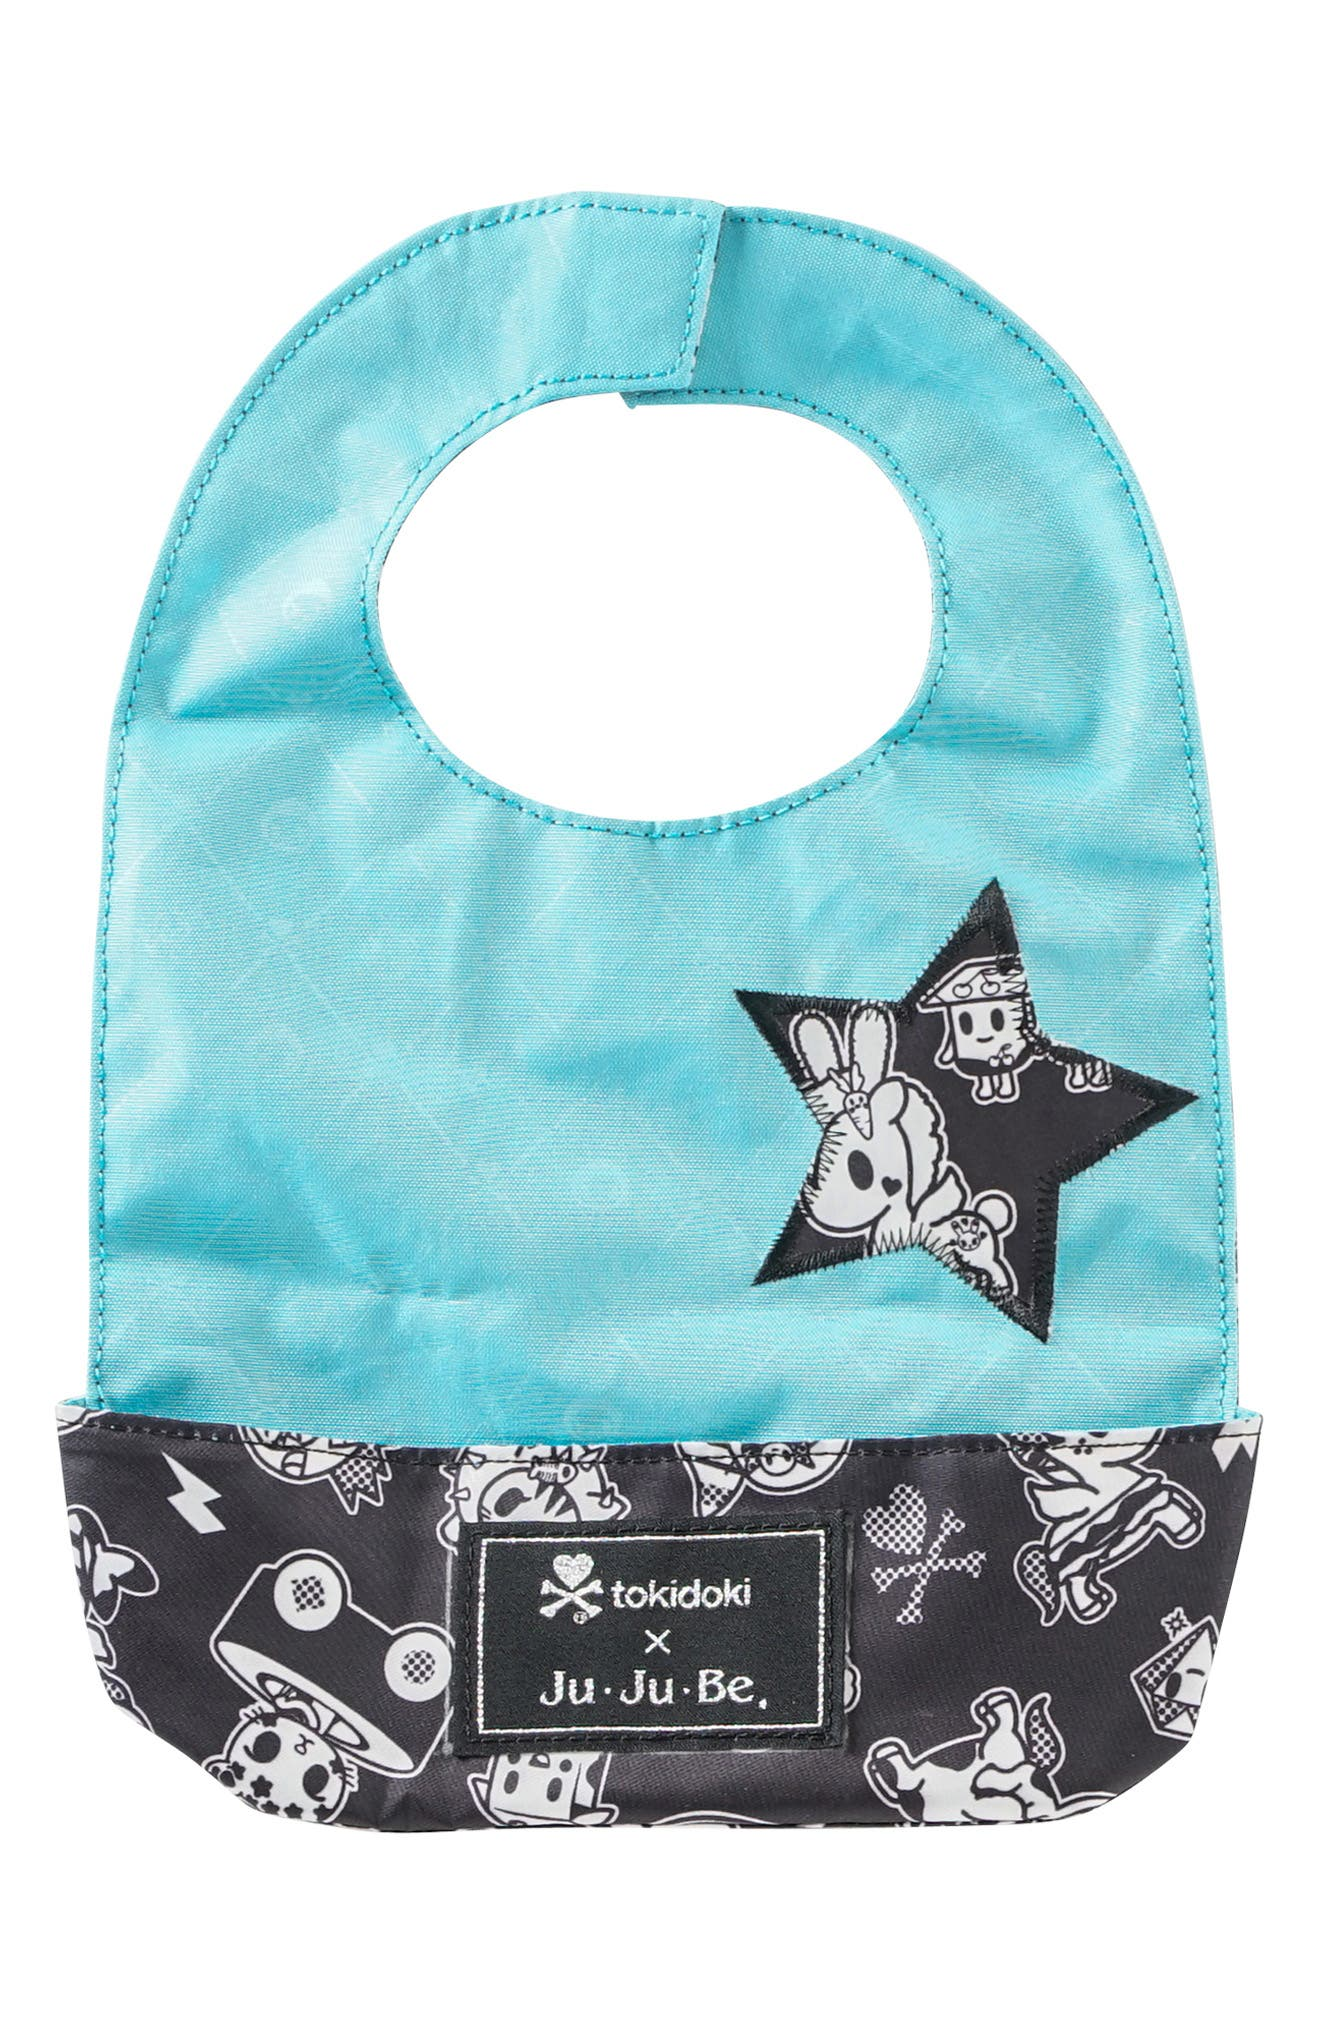 tokidoki x Ju-Ju-Be 'Be Neat' Reversible Bib,                         Main,                         color, 009